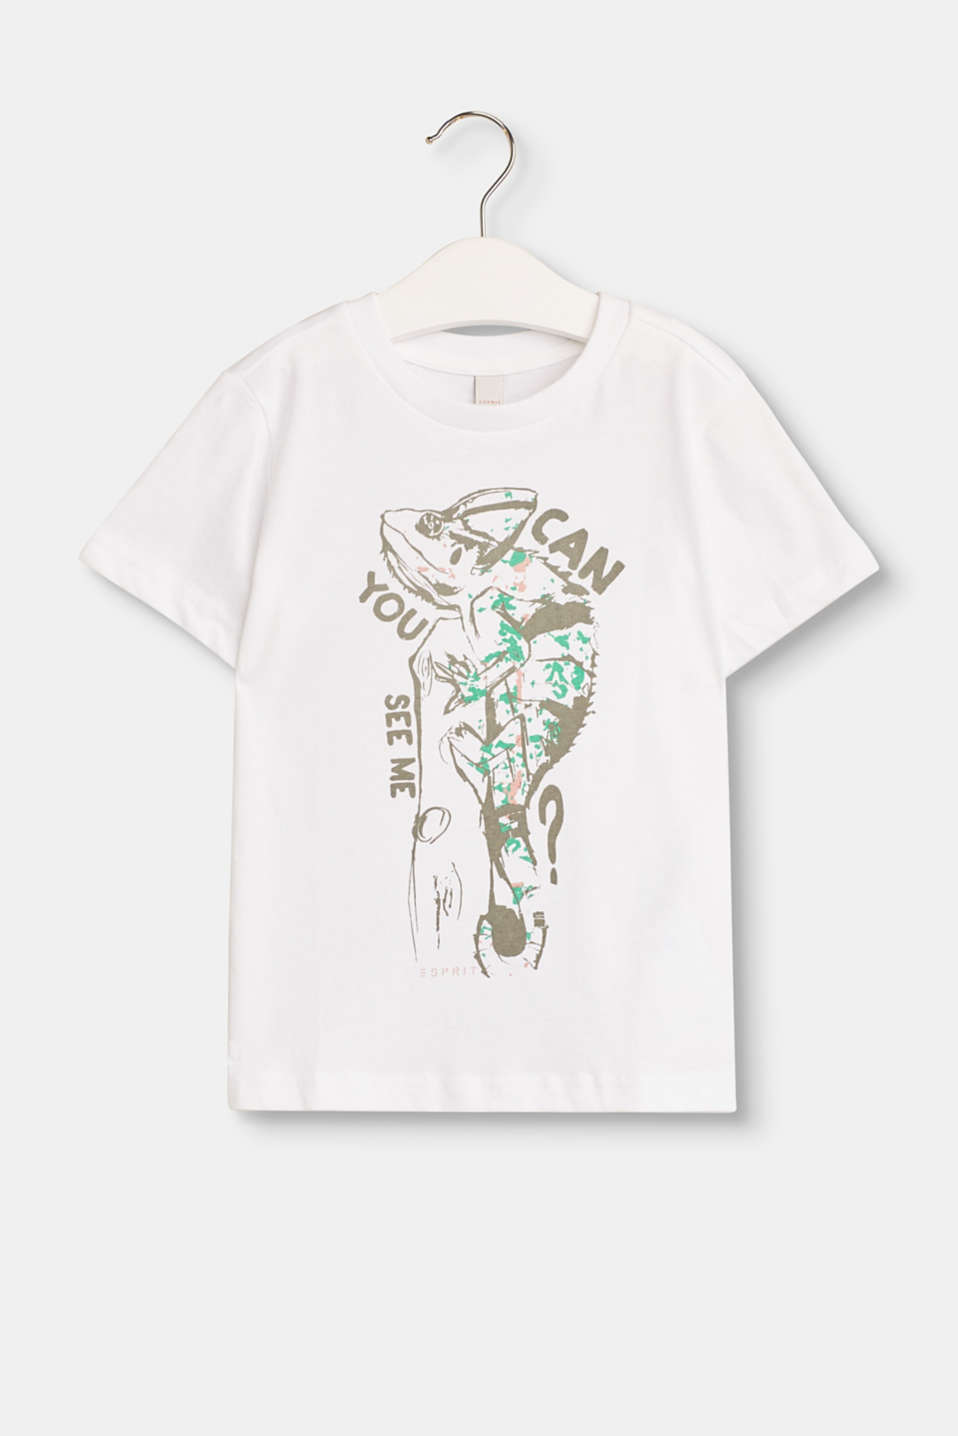 Colourful transformation artist: the comic style chameleon decorates this soft cotton top.